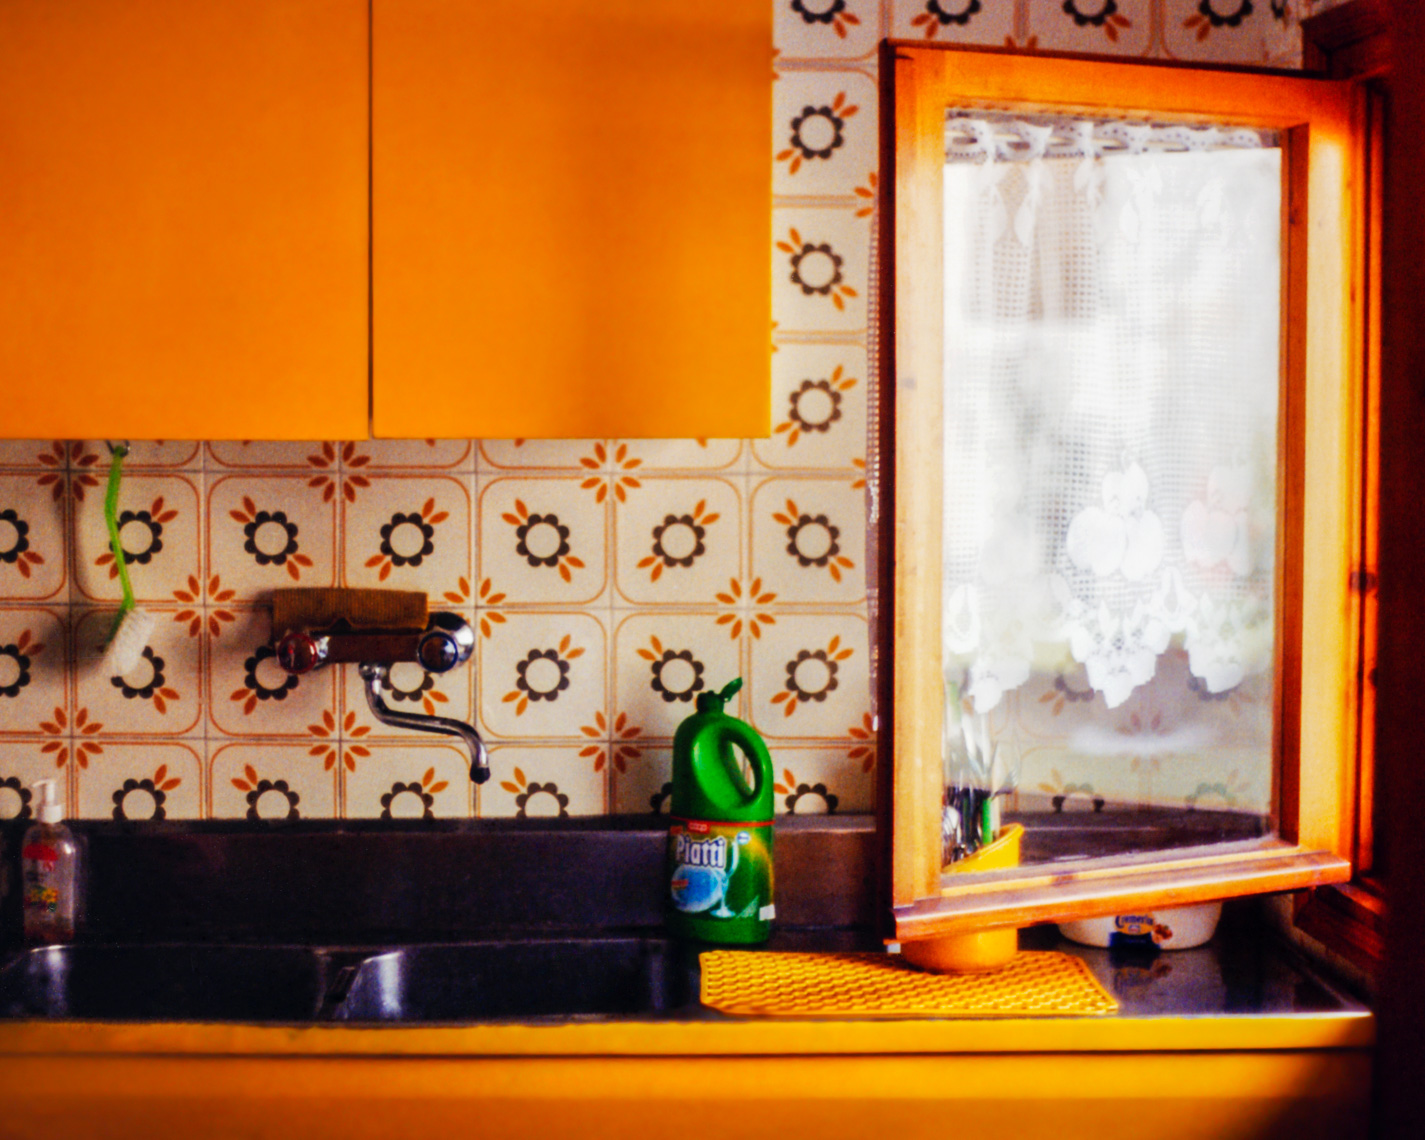 Image of Italian Kitchen | Tosca Radigonda Photography